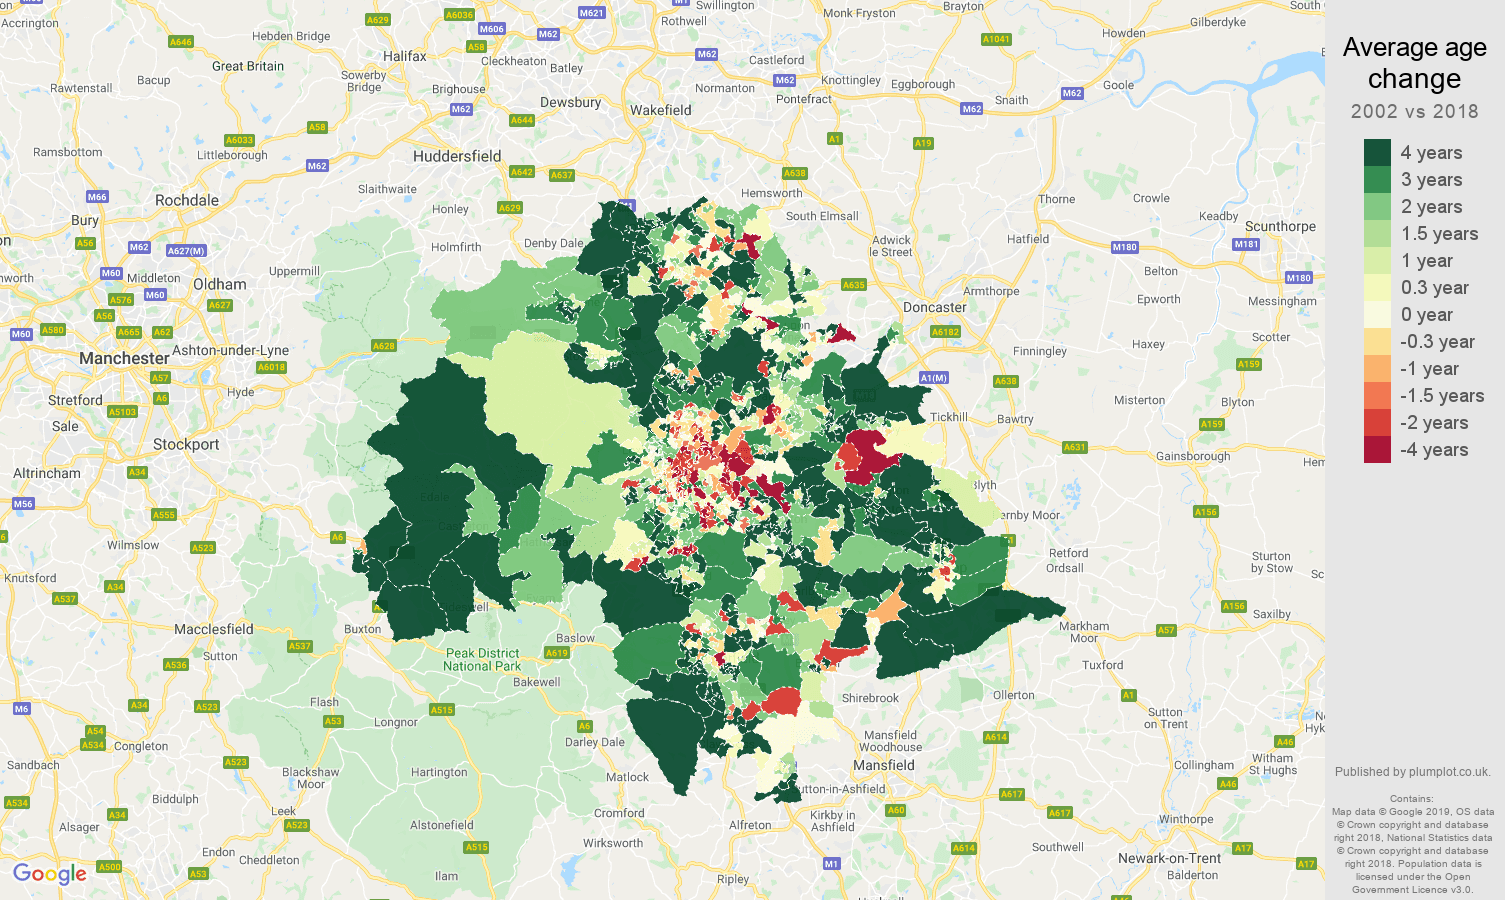 Sheffield average age change map